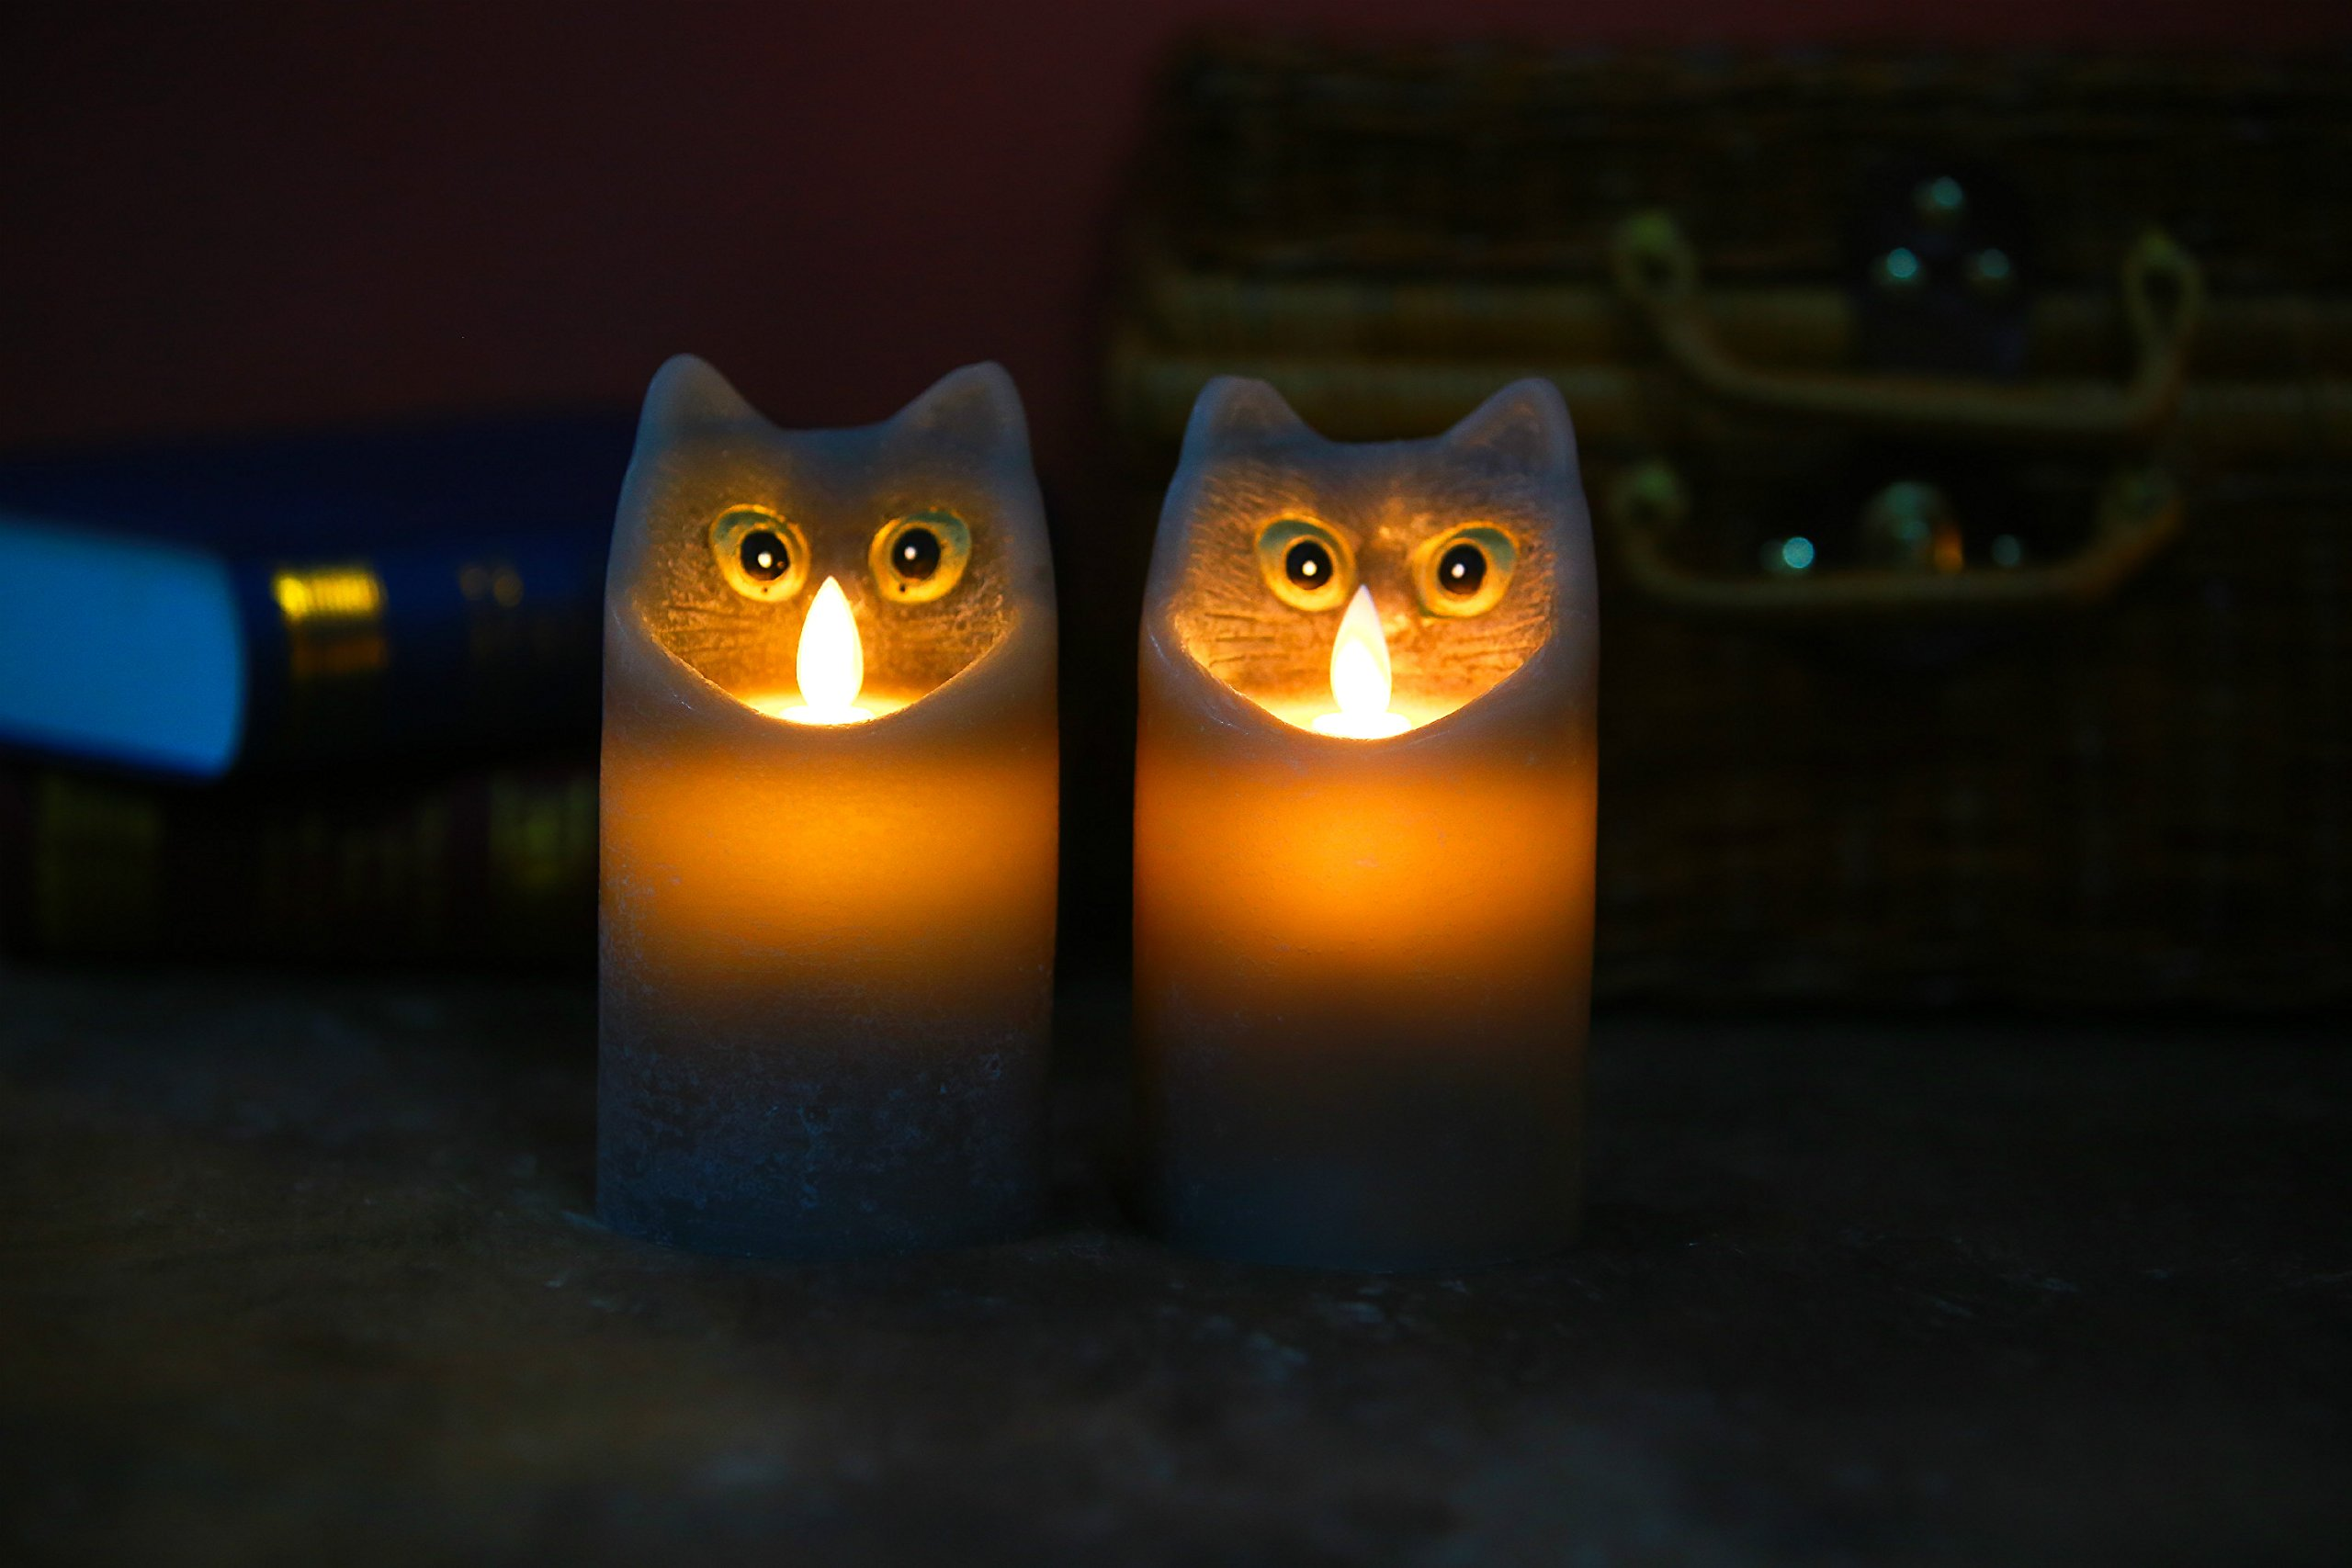 Kitch Aroma Marble Grey Color Cartoon Cat Flameless Candle with Timer For Birthday Gifts,Dia 3'' x H6'',Pack of 2 by Kitch Aroma (Image #8)